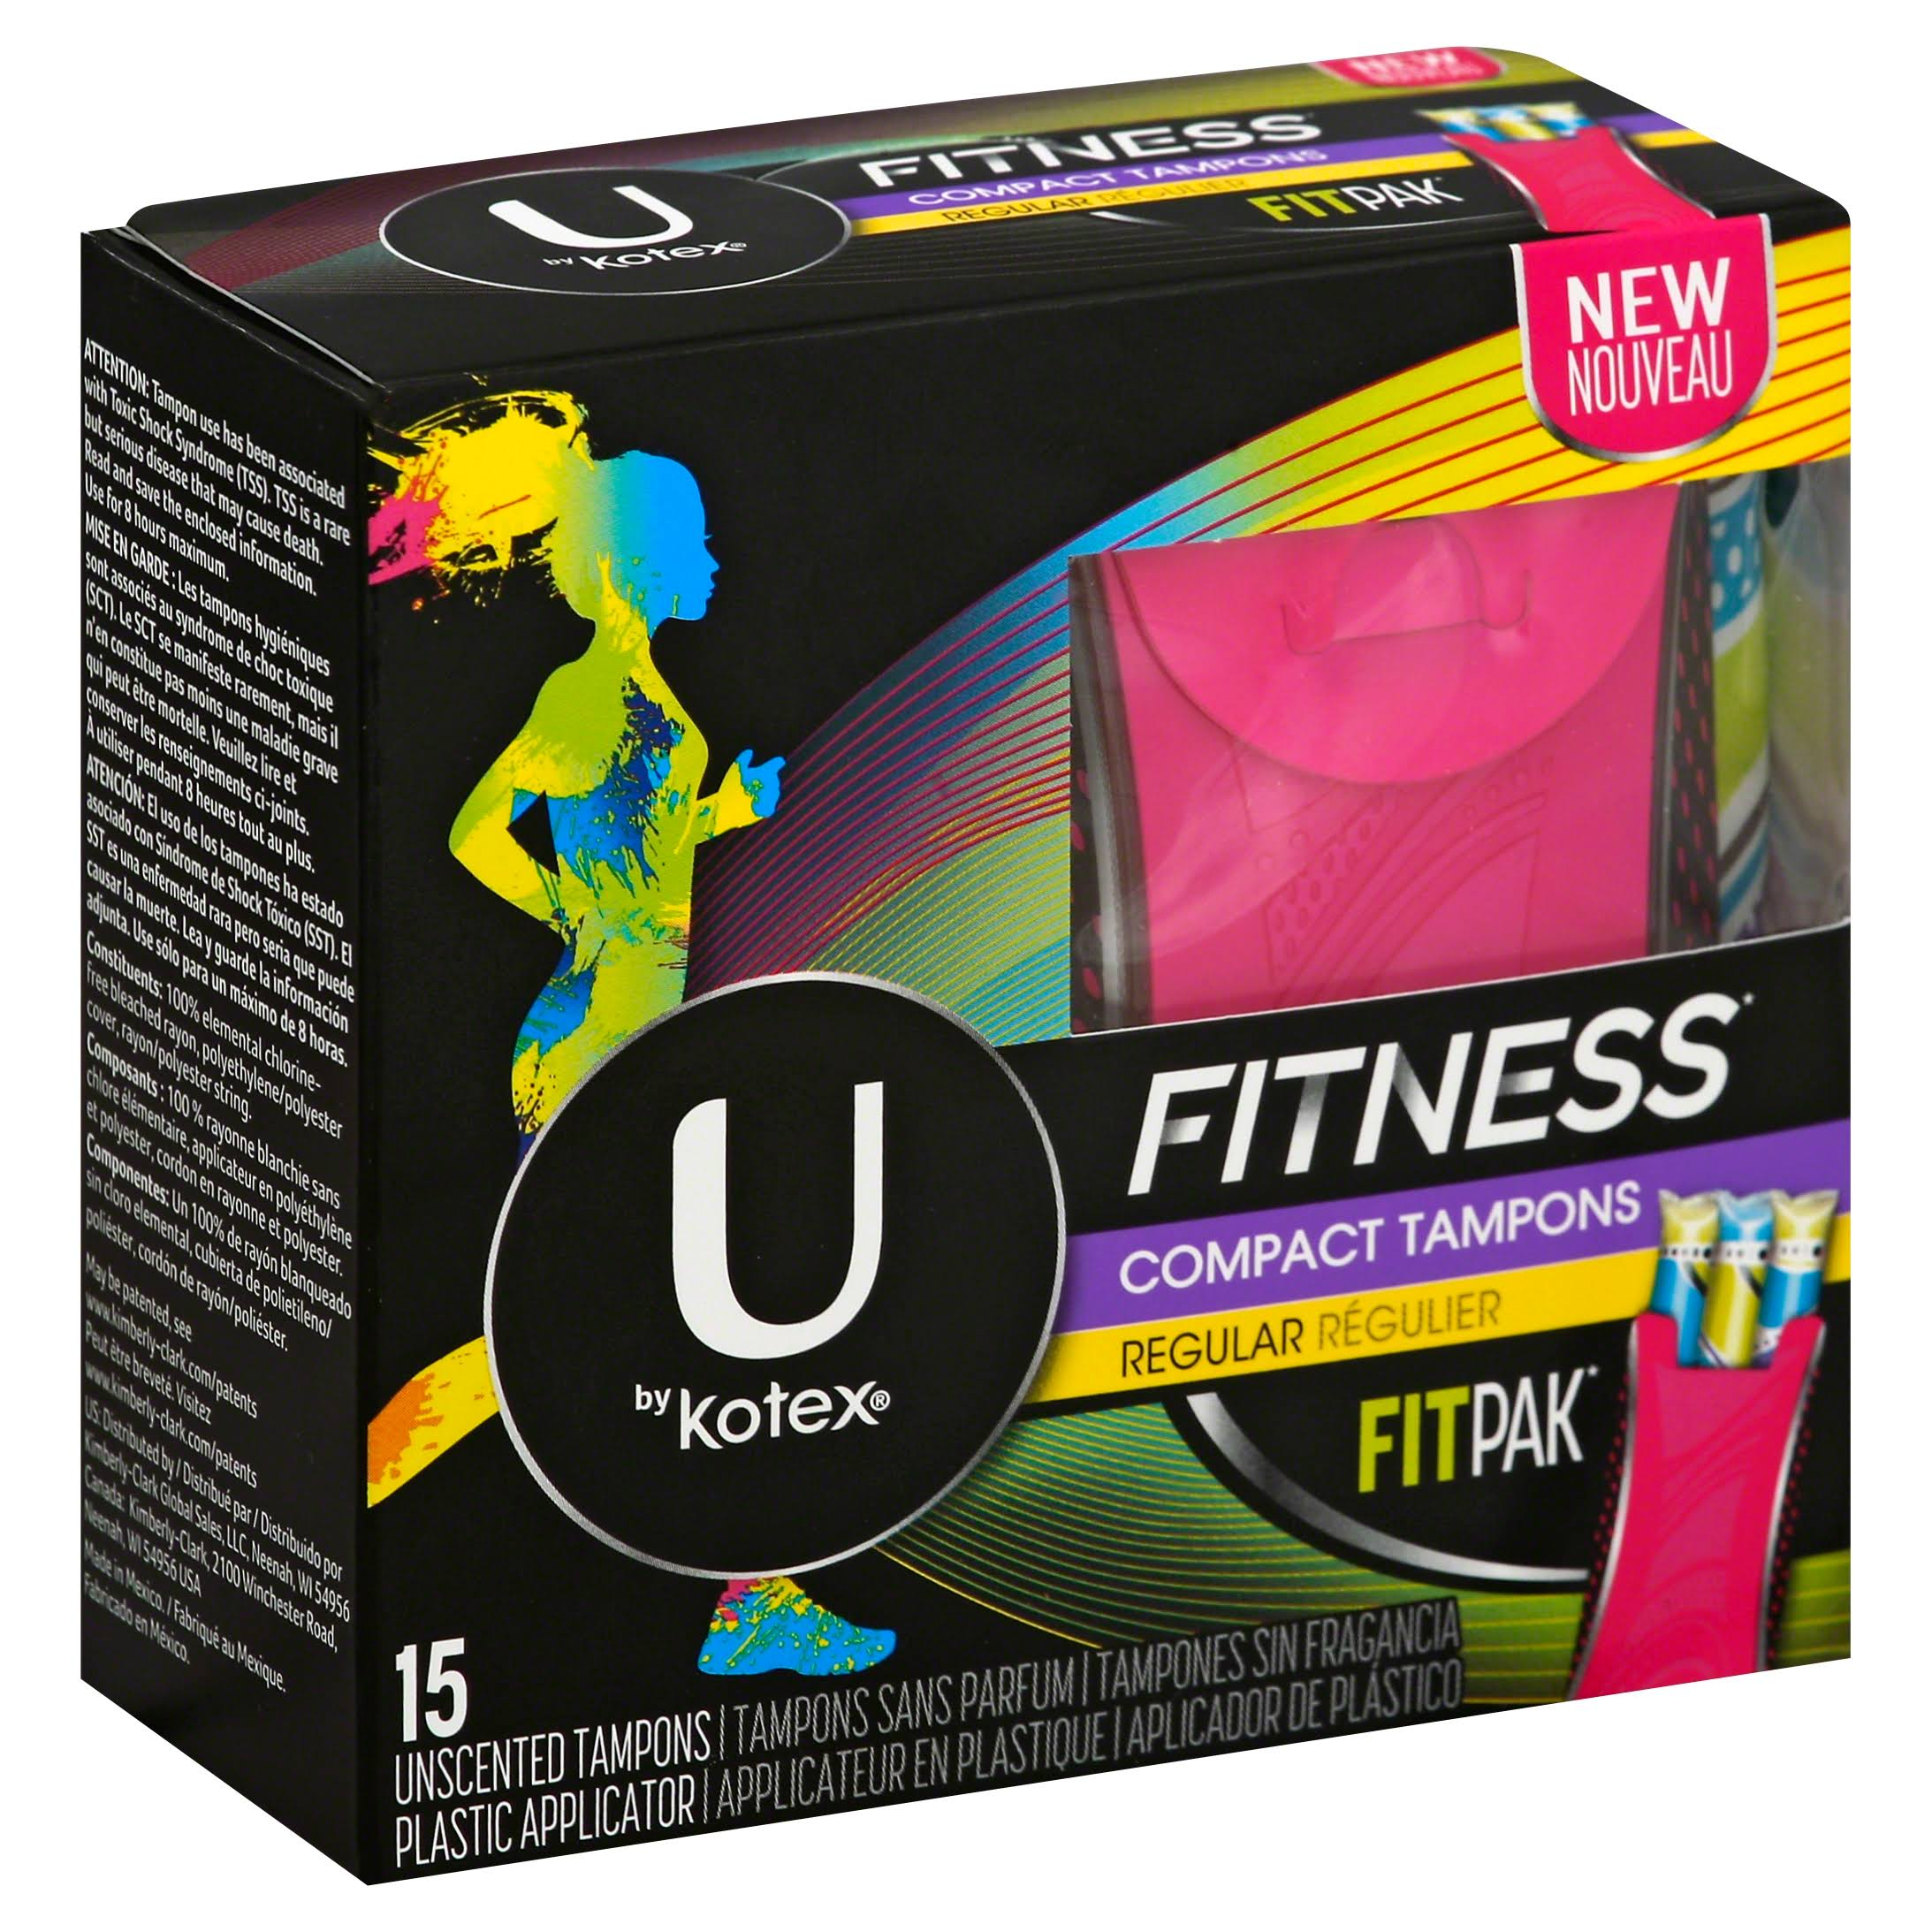 U by Kotex Fitness Compact Tampons - Regular, Unscented, 15ct